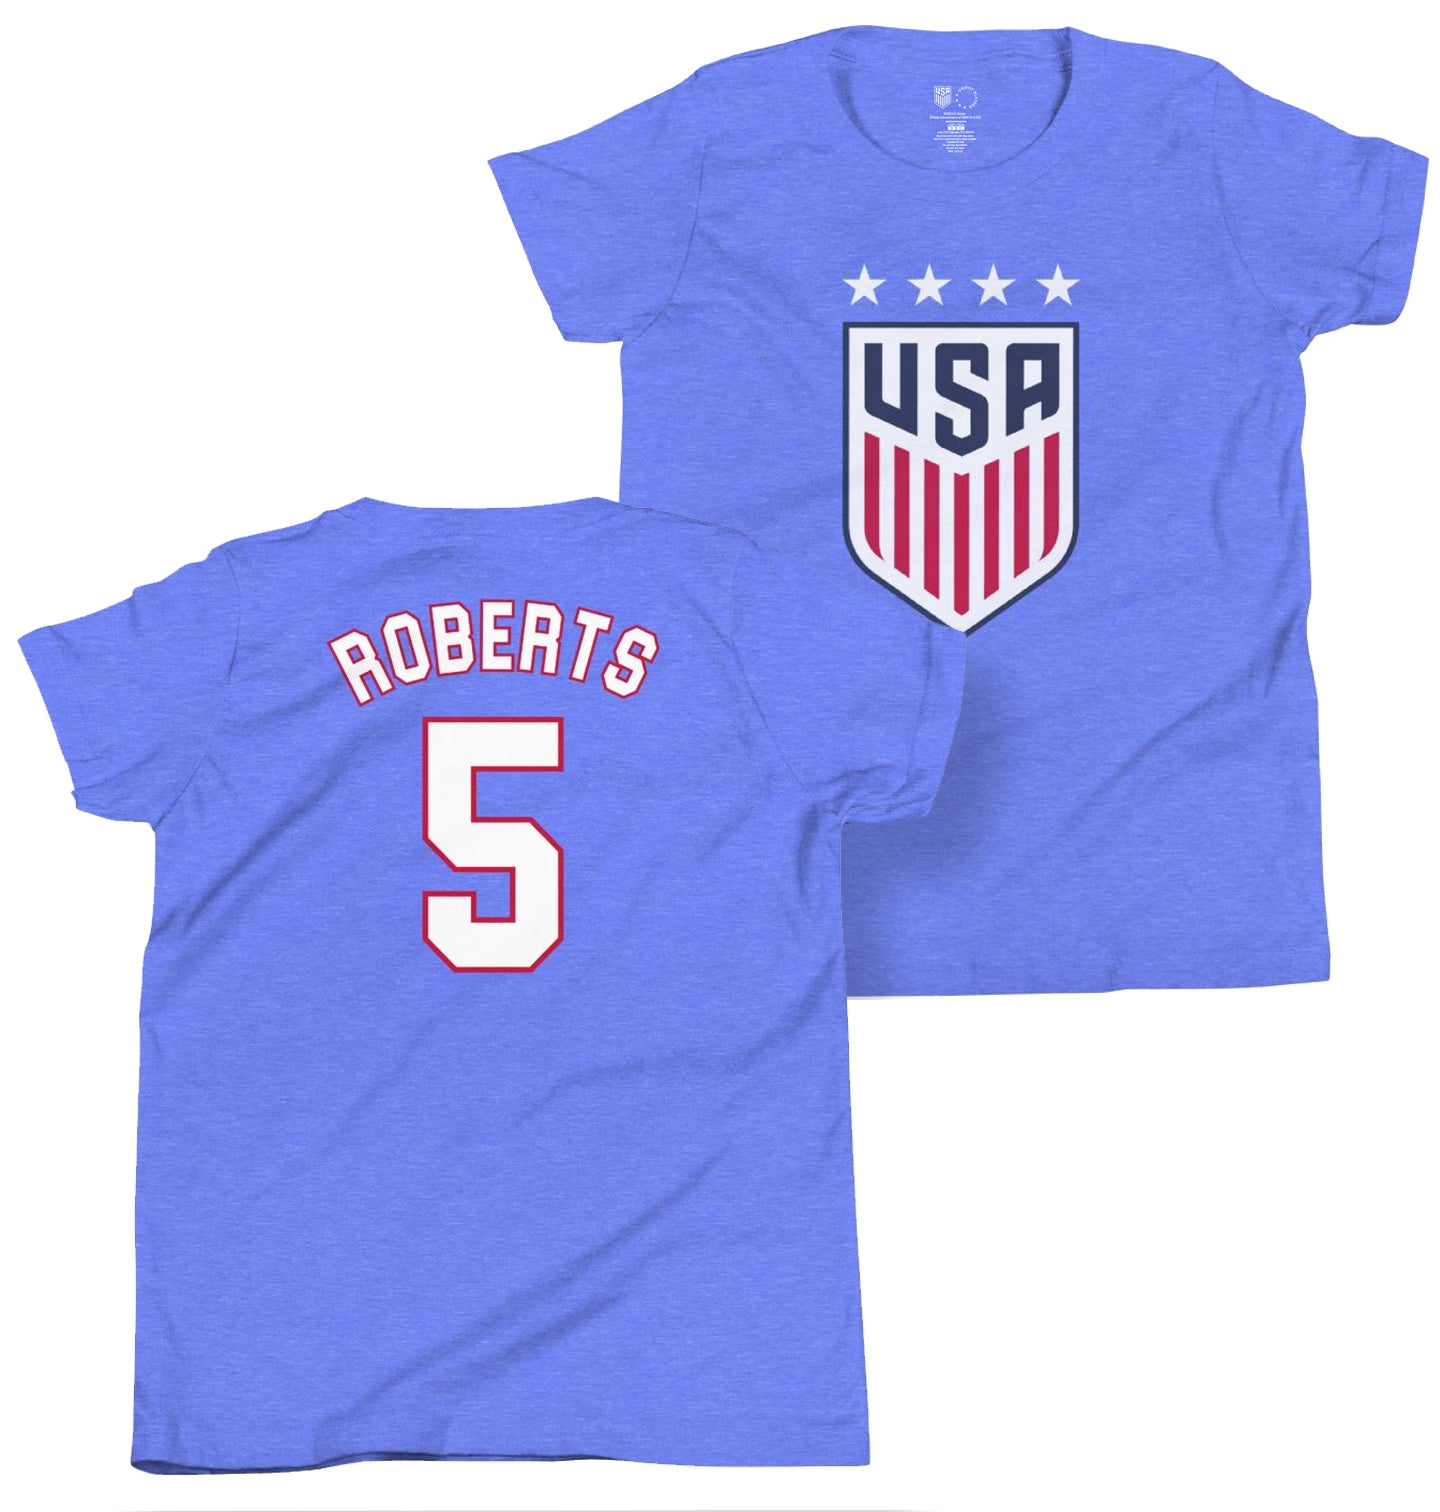 Tiffany Roberts 1999 Youth USWNT 4 Star T-Shirt